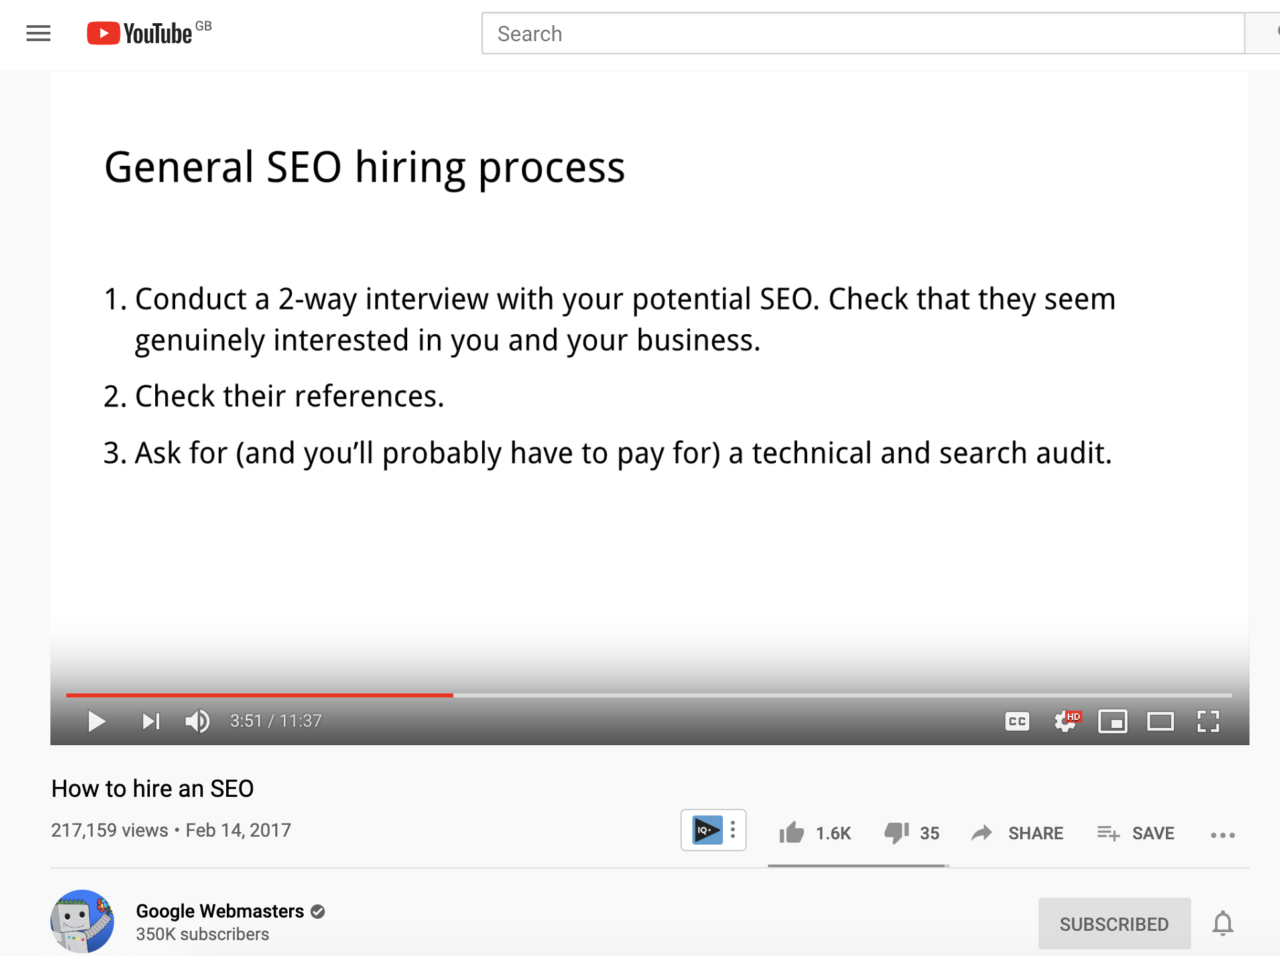 Screenshot of How to hire an SEO Youtube video